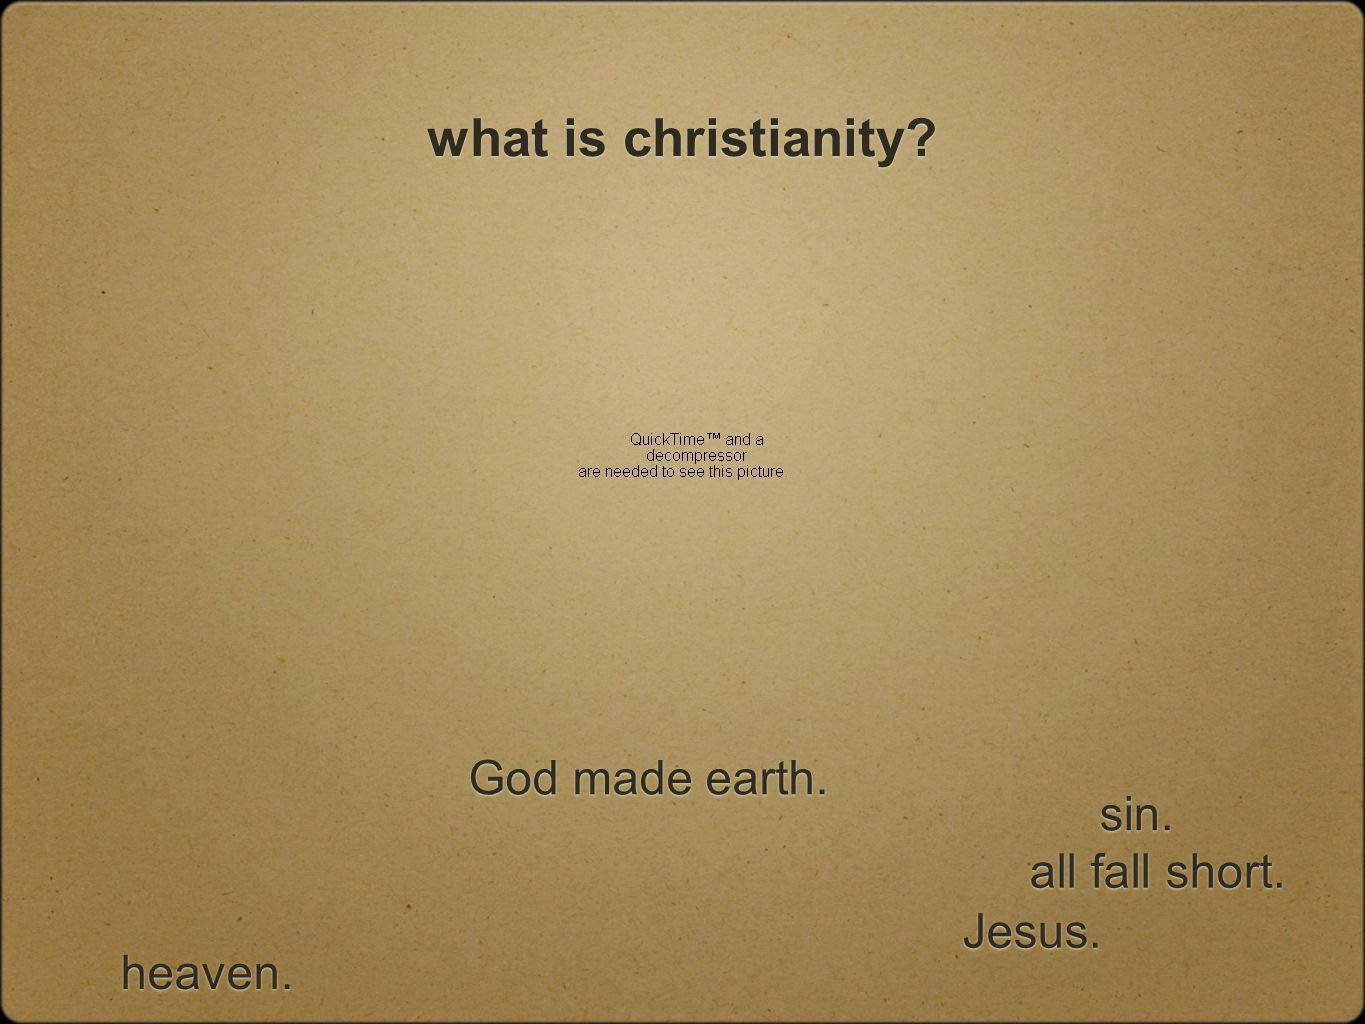 what is christianity God made earth. all fall short. Jesus. sin. heaven.